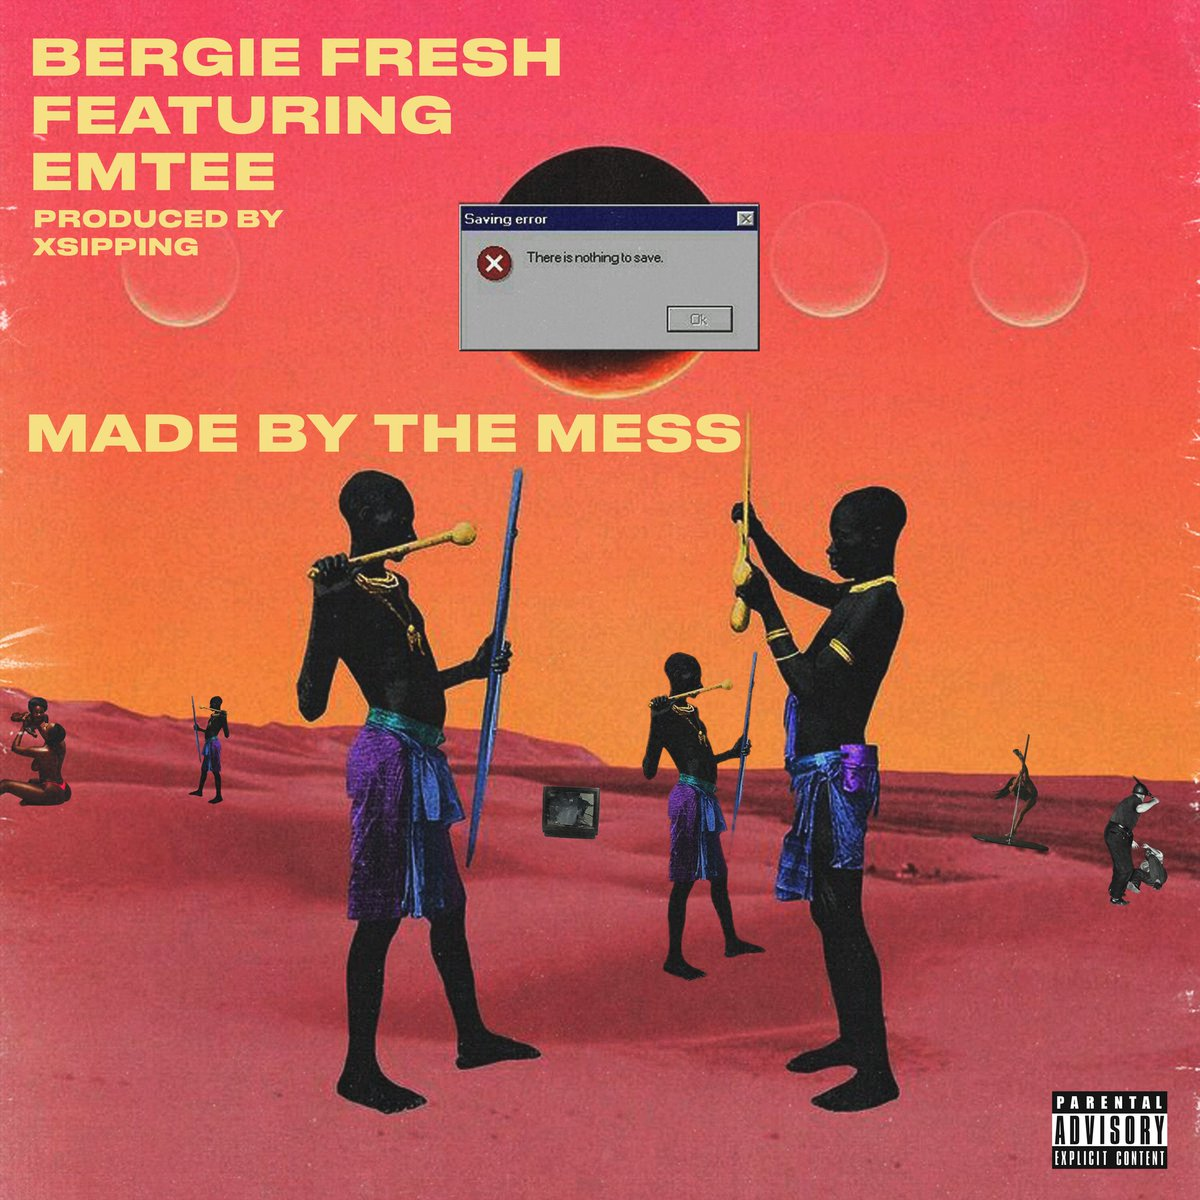 bergie fresh Listen To Bergie Fresh's New Single Ft Emtee Titled 'Made By The Mess' D9qYzmUXoAAtEa1